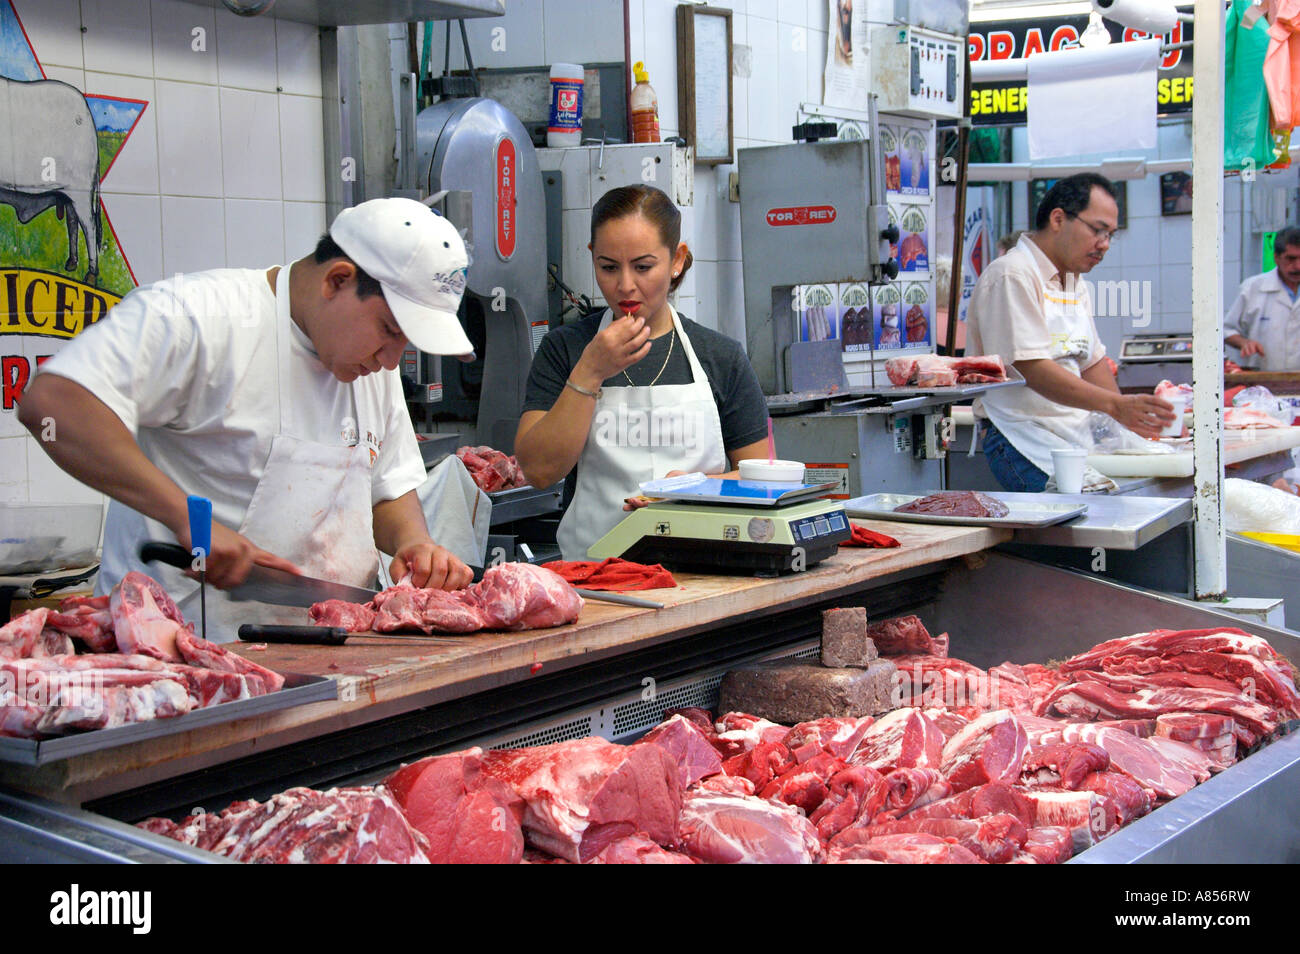 meat market stock images - photo #11